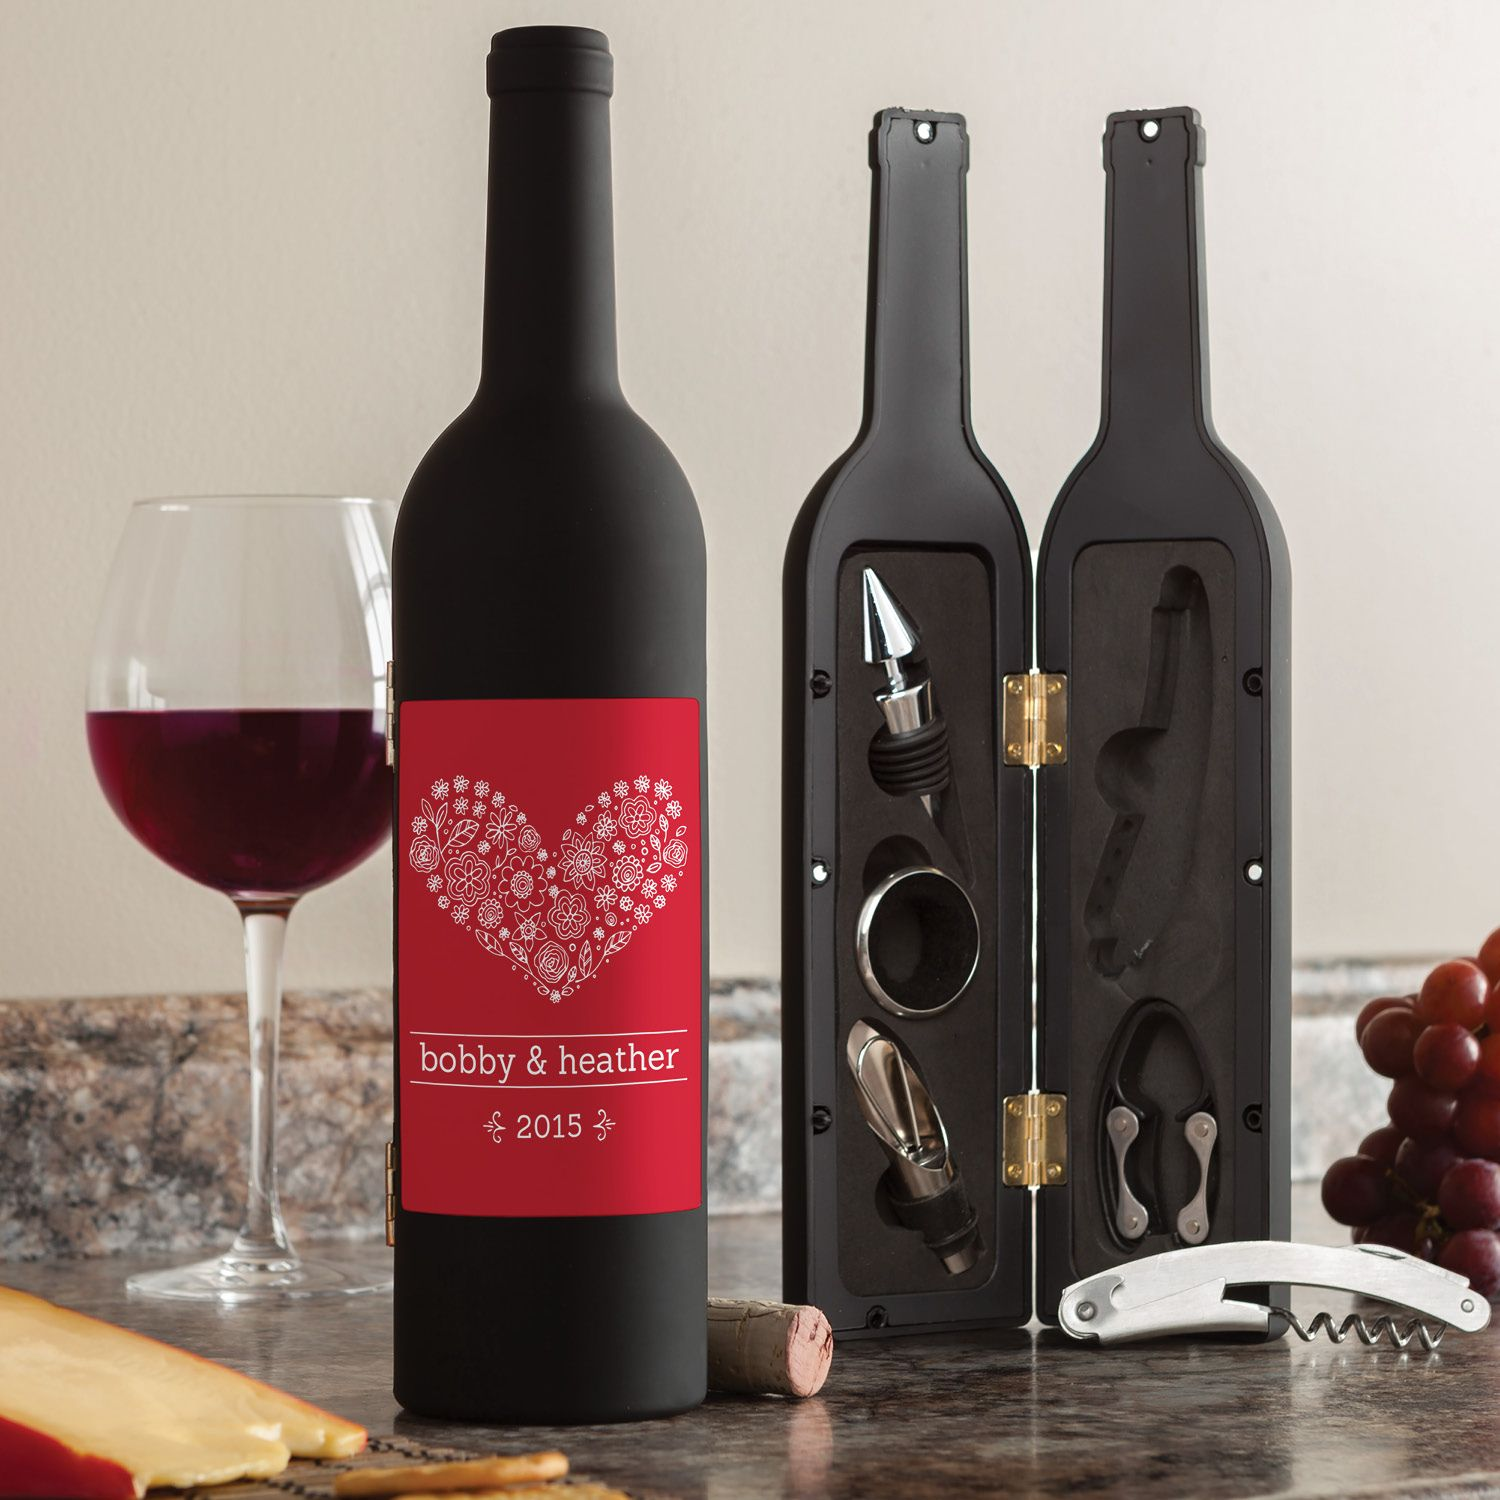 The Perfect Couple Personalized Wine Kit For The Couple Wedding Personalized Planet Wine Kits Wine Gifts Wine Making Kits